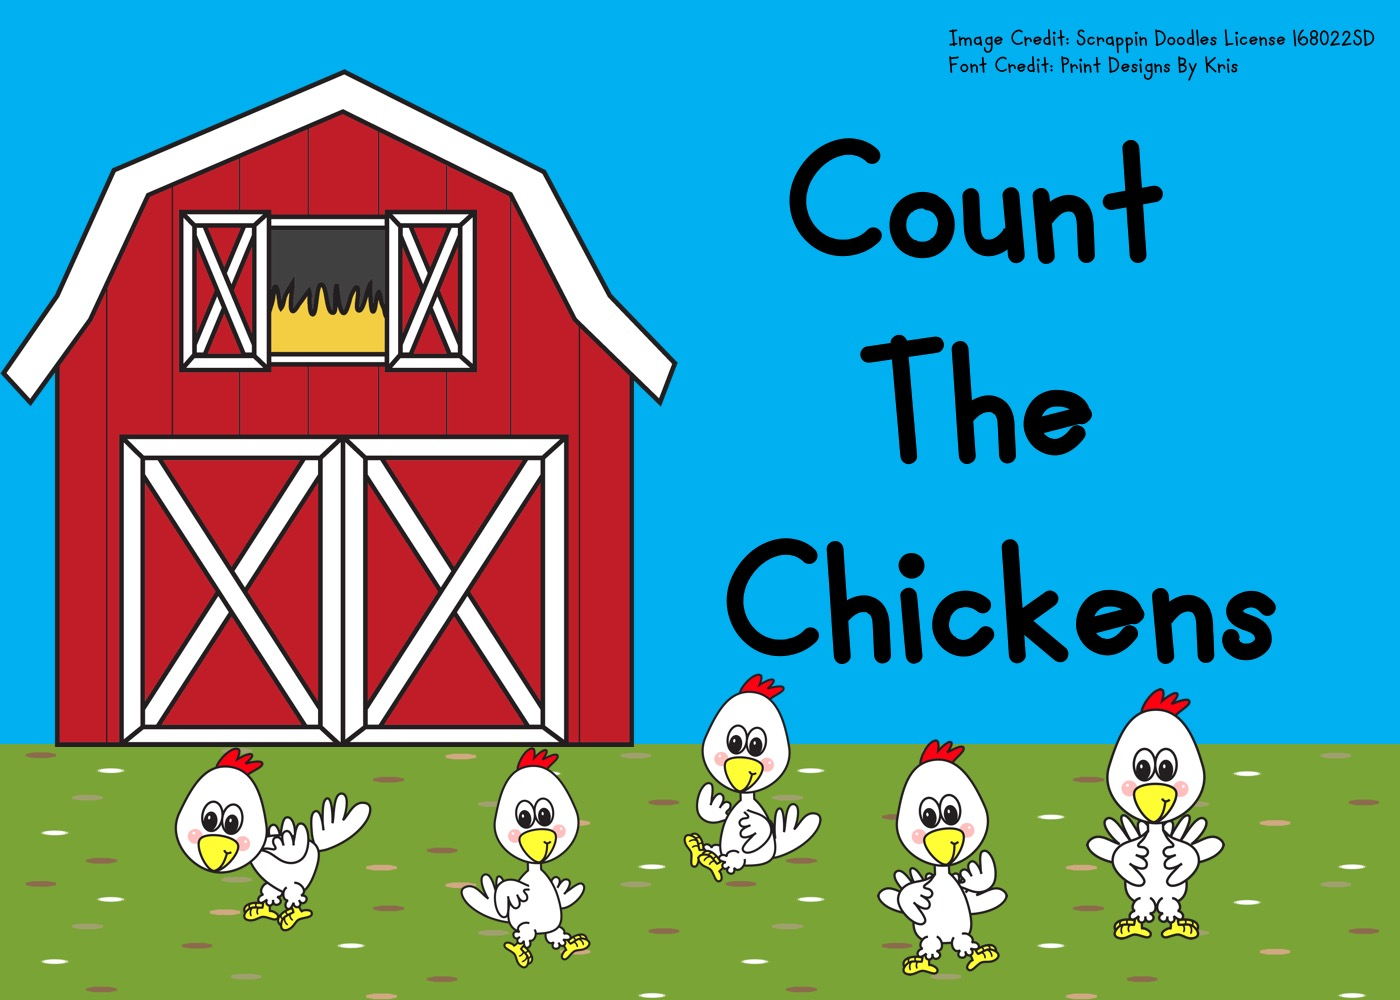 Fun Farm Printables for Preschool and Kindergarten | Chicken Themed Counting Games | Hands On Math Homeschool Activities | Kids Classroom Center Ideas and Worksheets #FreePrintableWorksheetsForKids #farm #chicken #counting #spring #clipcards